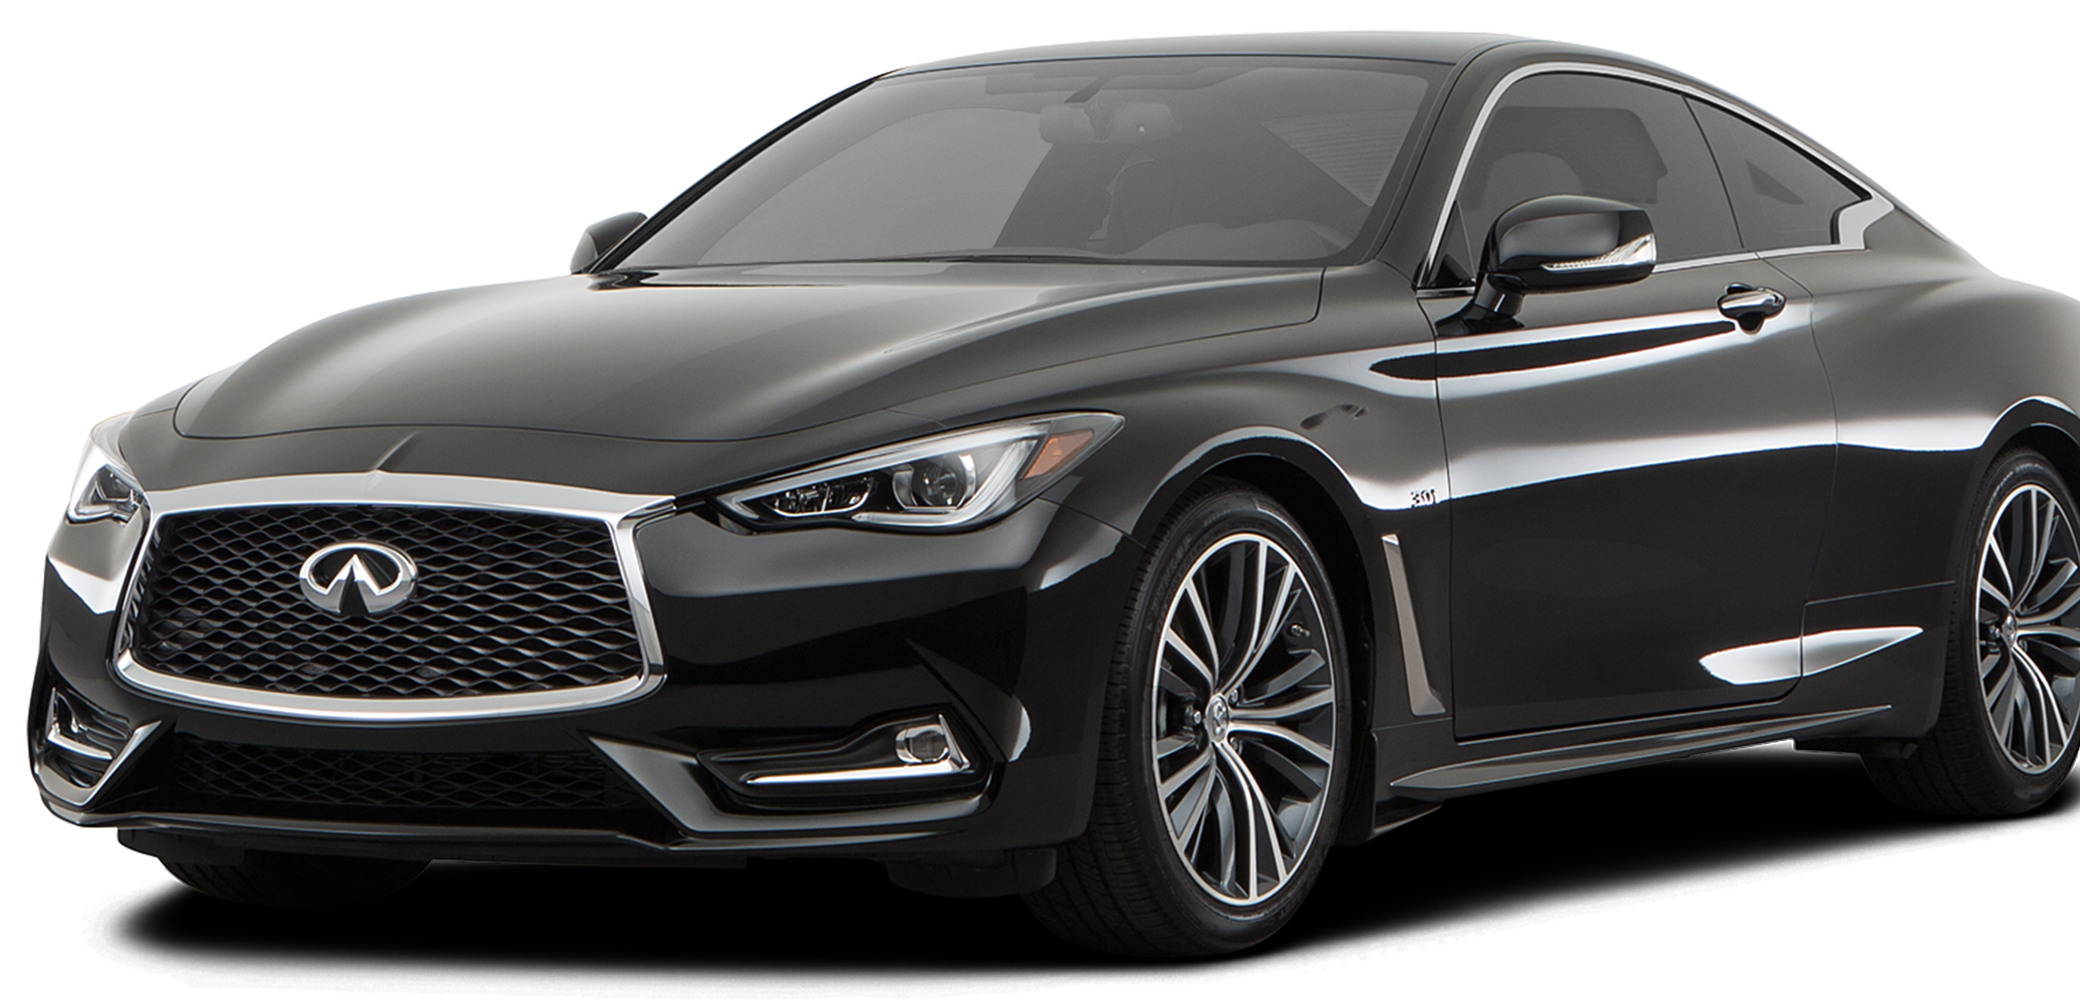 2019 INFINITI Q60 Incentives, Specials & Offers in ...